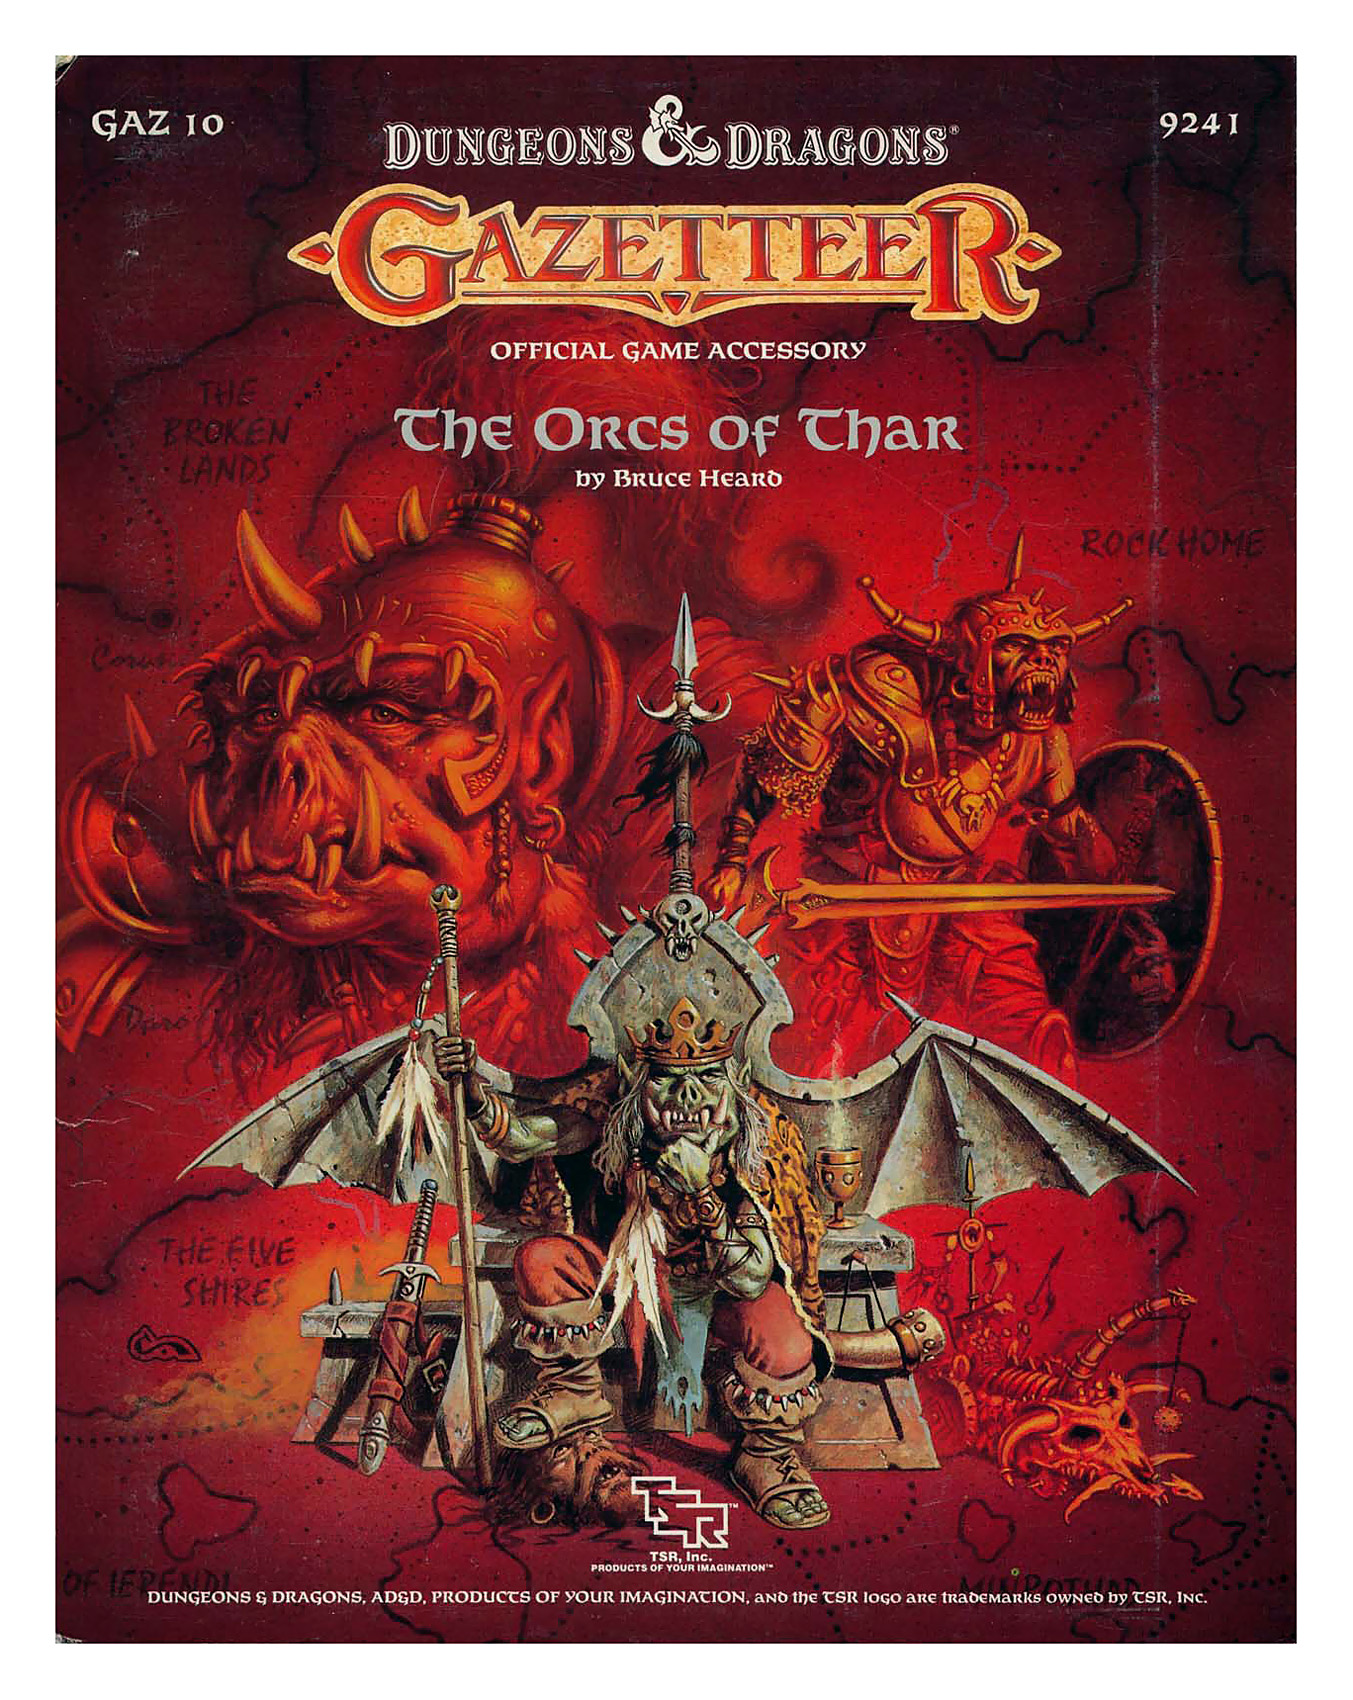 orcs Orchi di Thar in copertina - by Clyde Caldwell TSR - D&D Gazetteer, The Orcs of Thar (1988) © Wizards of the Coast & Hasbro